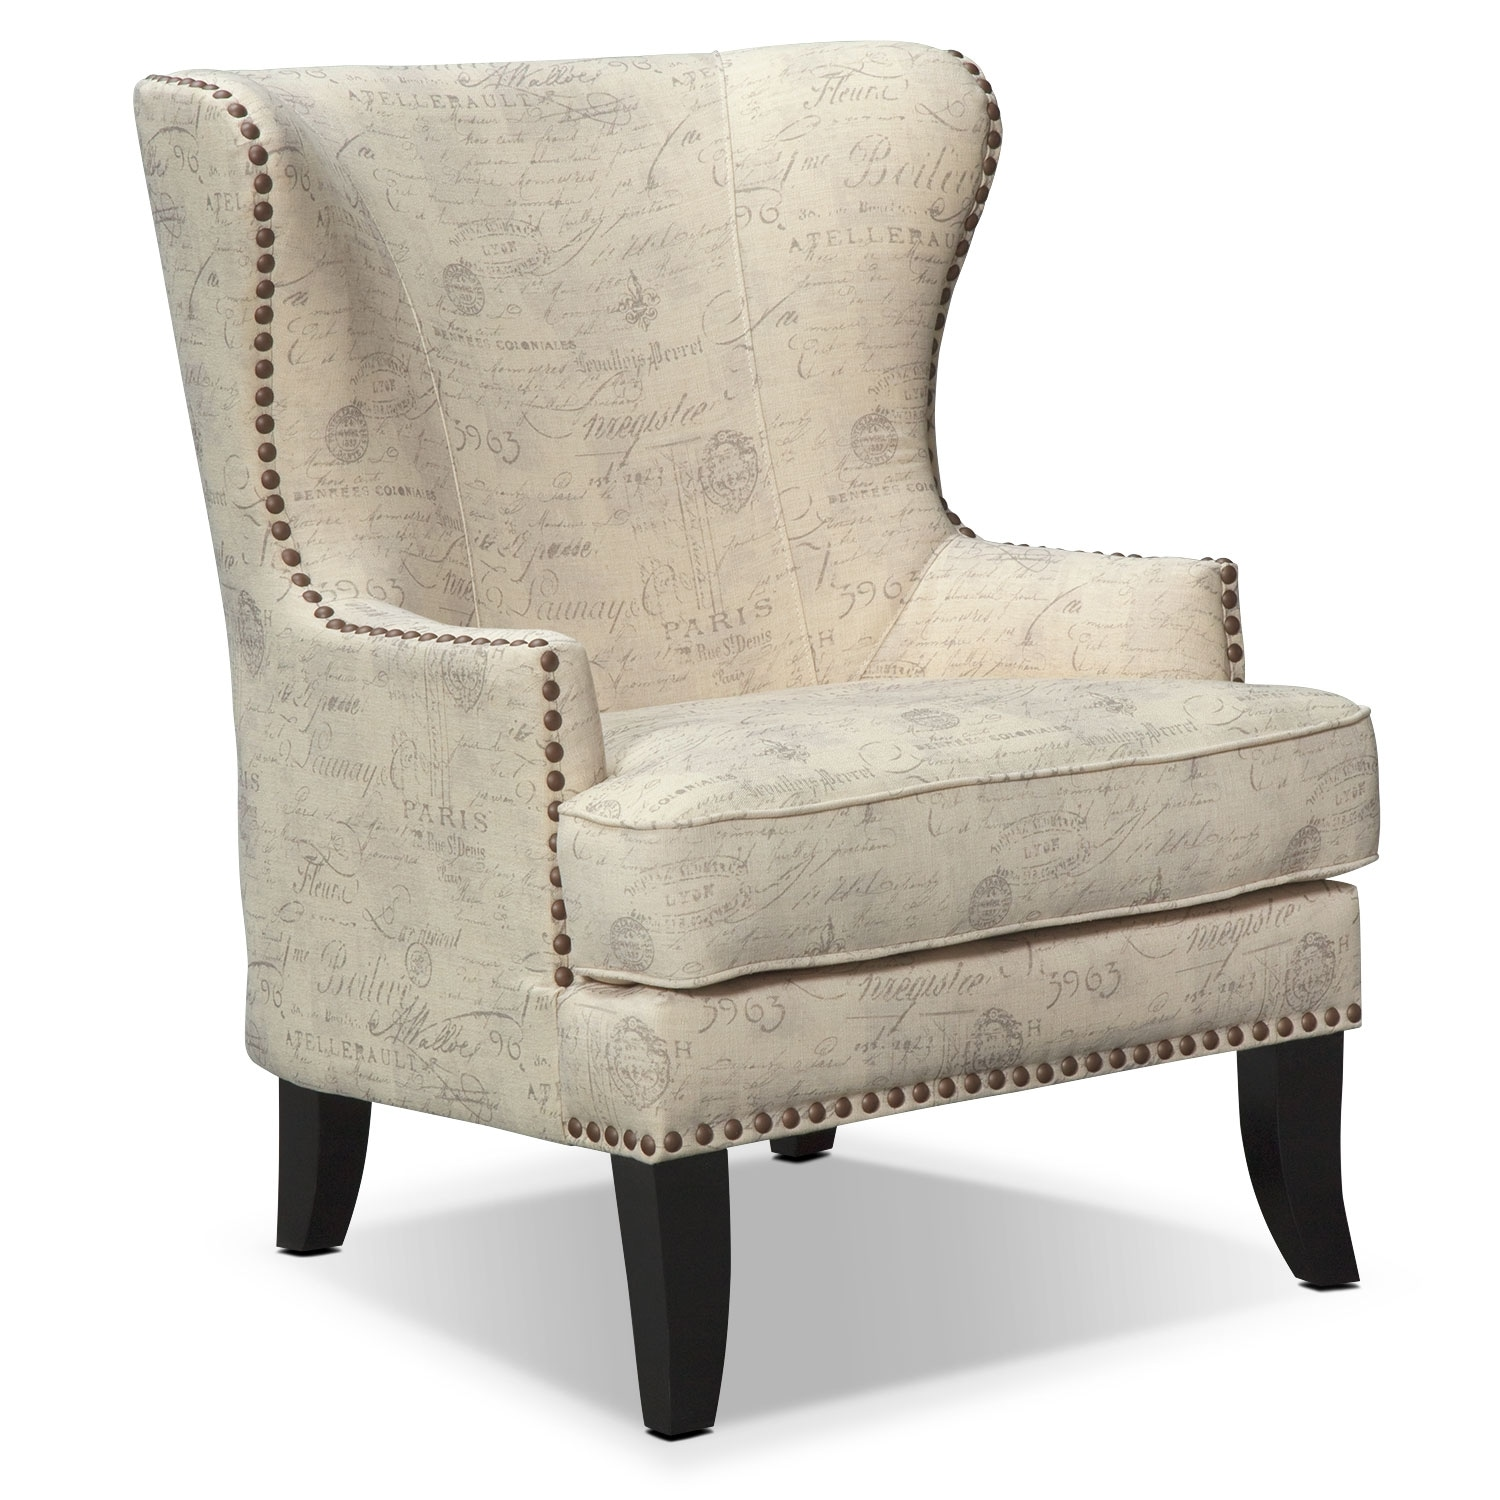 Marseille accent chair cream and black american for Living room chairs